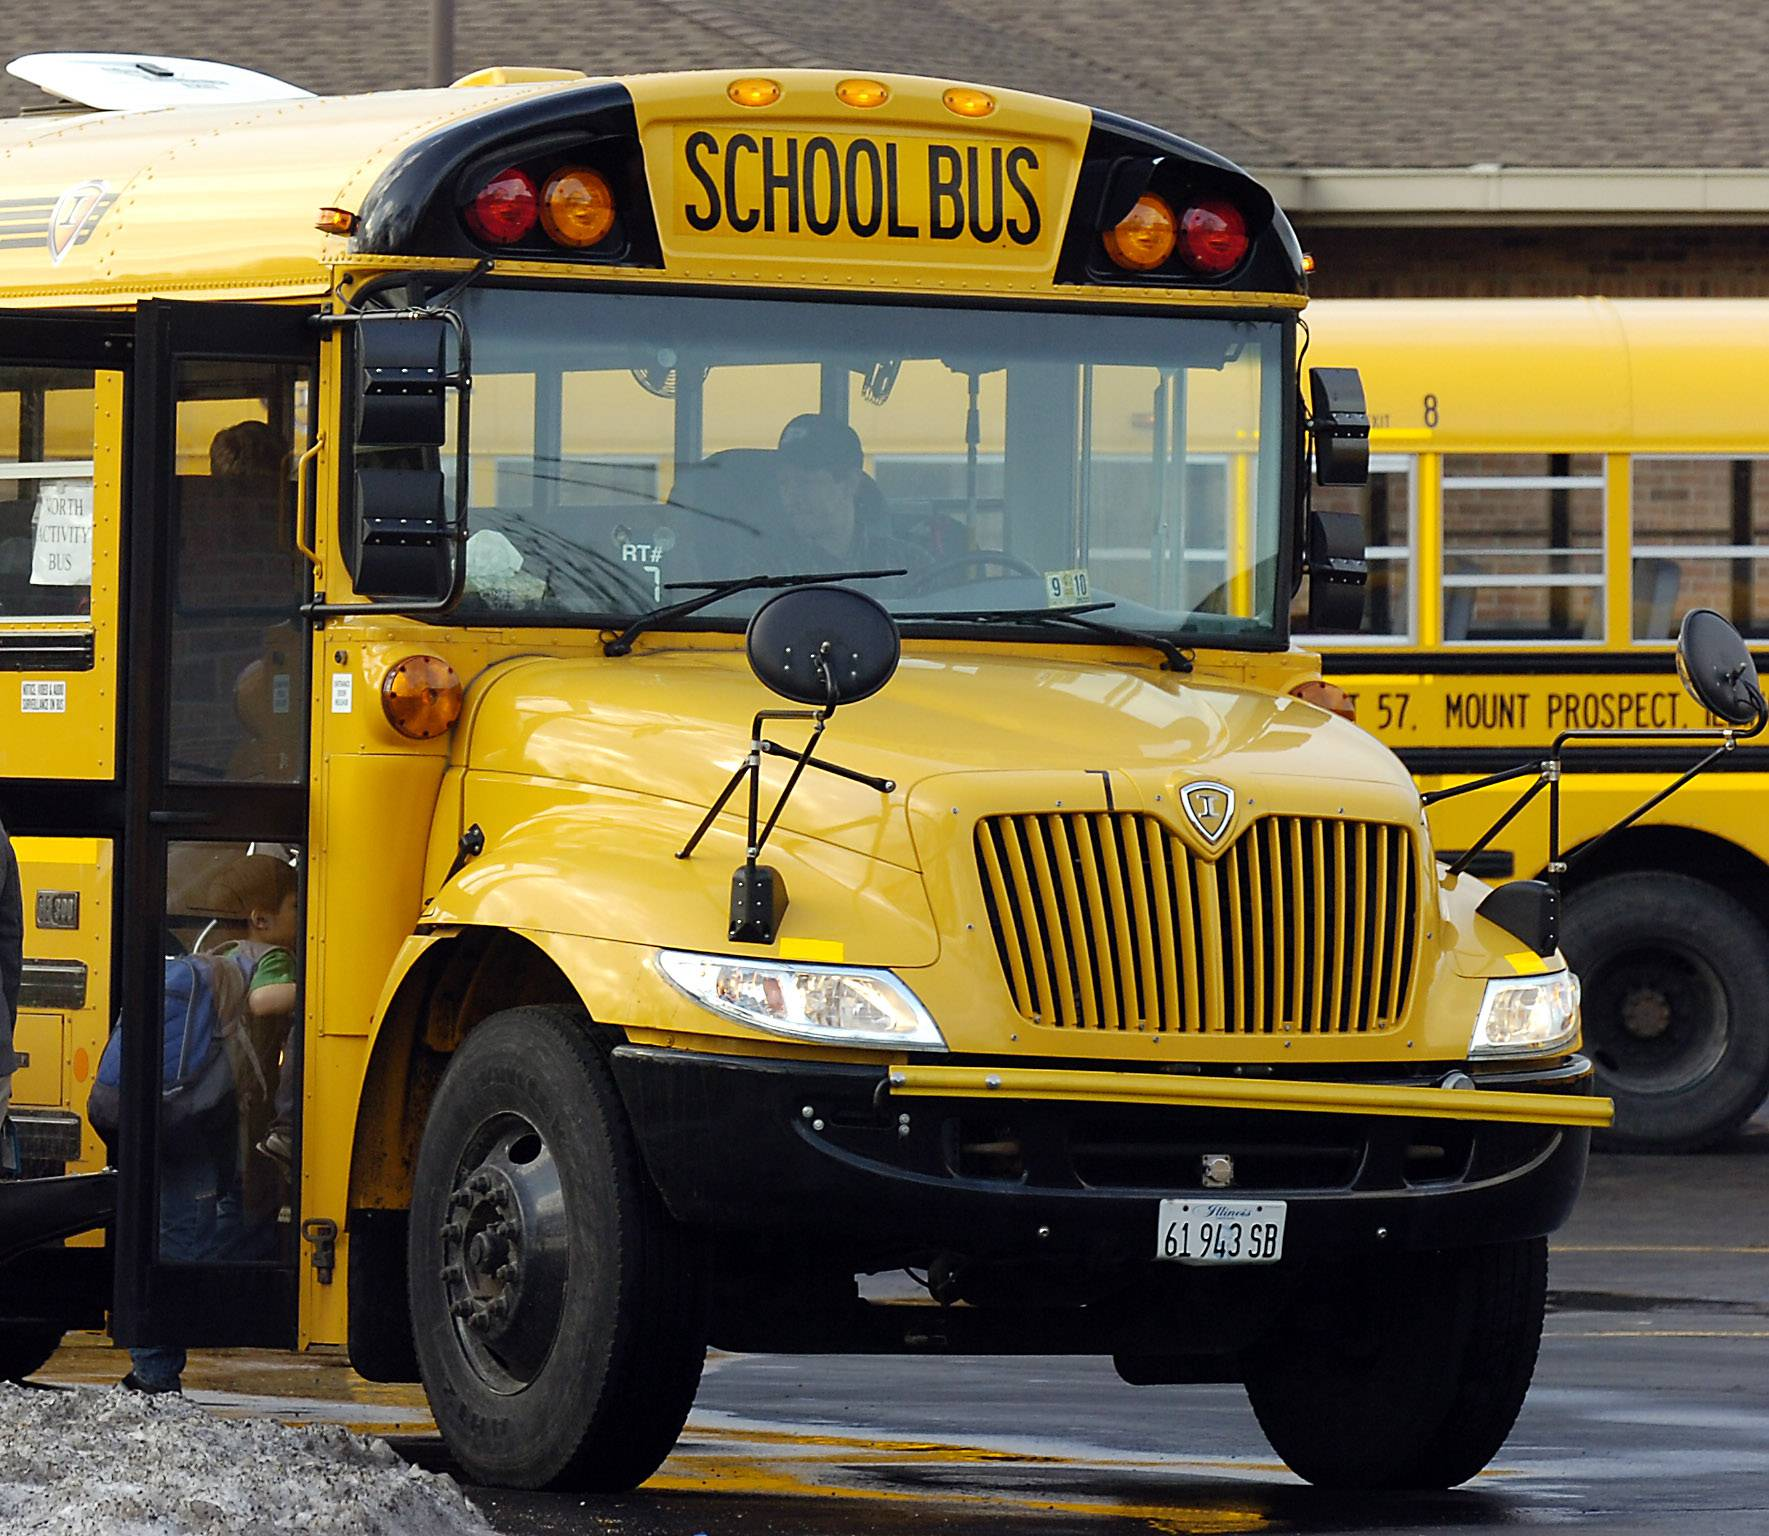 Students at Lions Park Elementary School and elsewhere in Mount Prospect won't notice many changes to the schools when they return to classes on Wednesday, but school leaders say there will be plenty of changes in how they learn. Officials in school districts 26 and 57 say they will continue this year to implement Common Core learning standards and have launched new programs to improve learning.